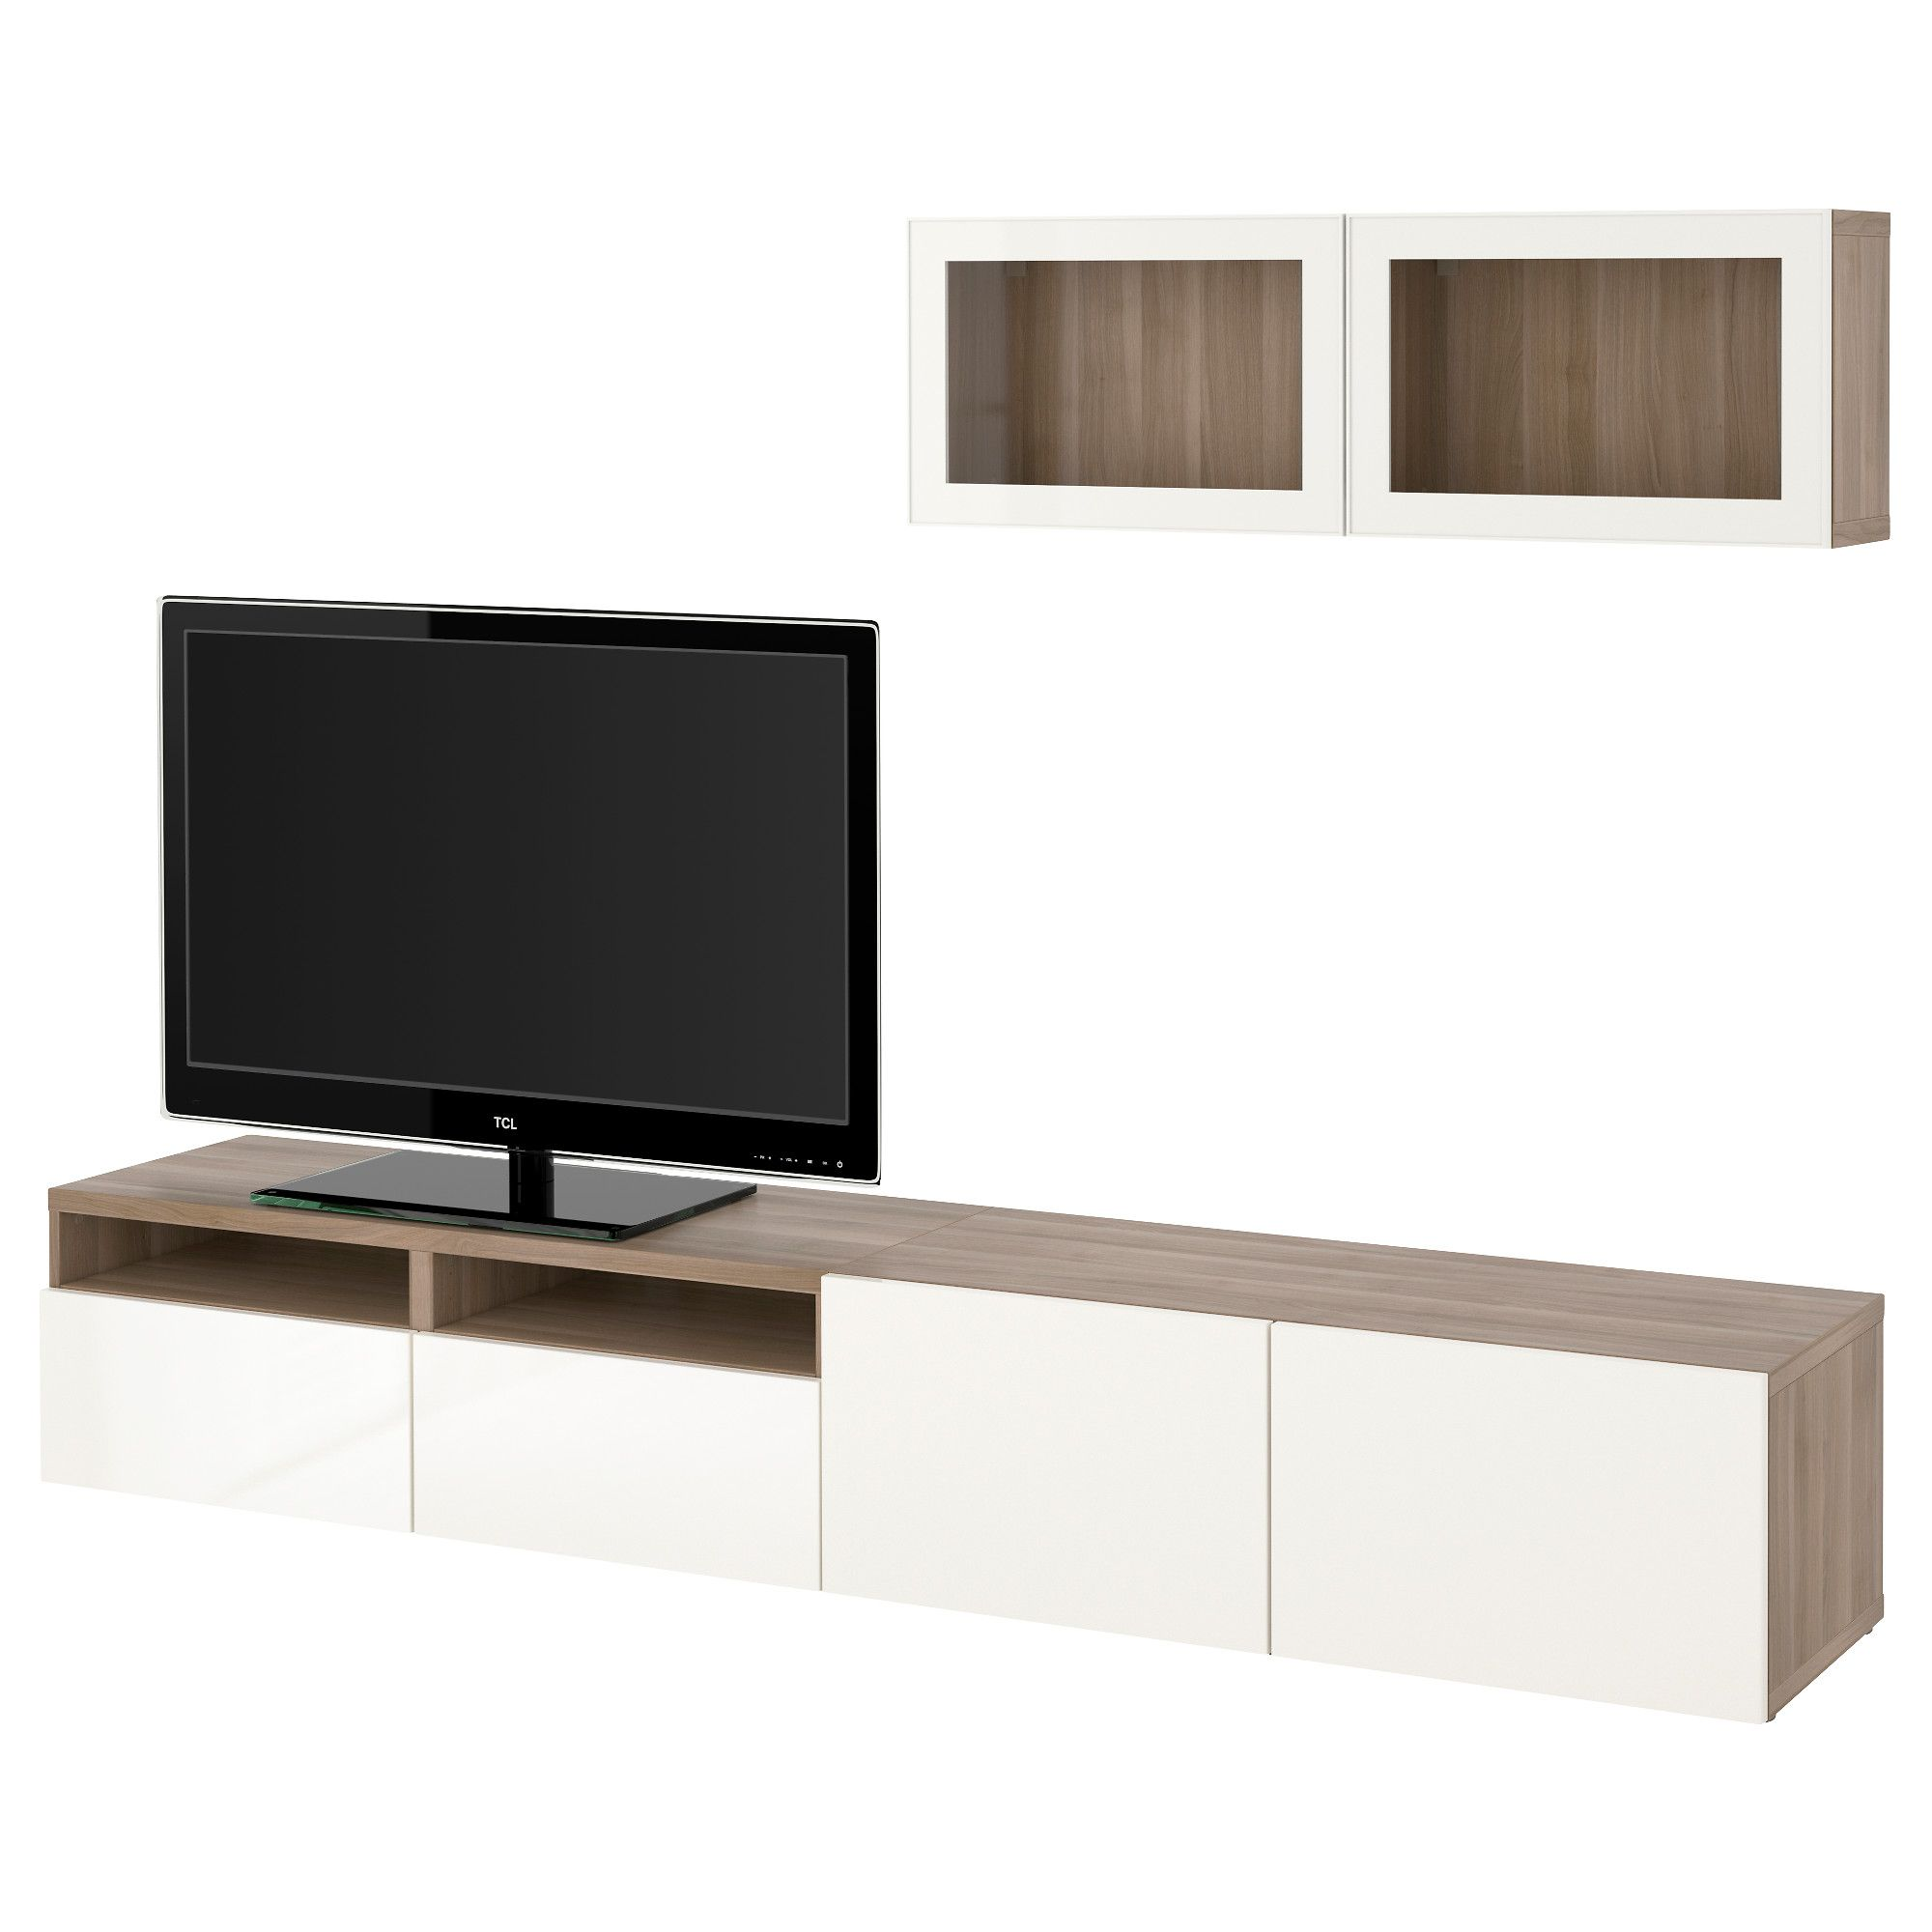 Tv Wand Glas Ikea BestÅ Tv Storage Combination Glass Doors Walnut Effect Light